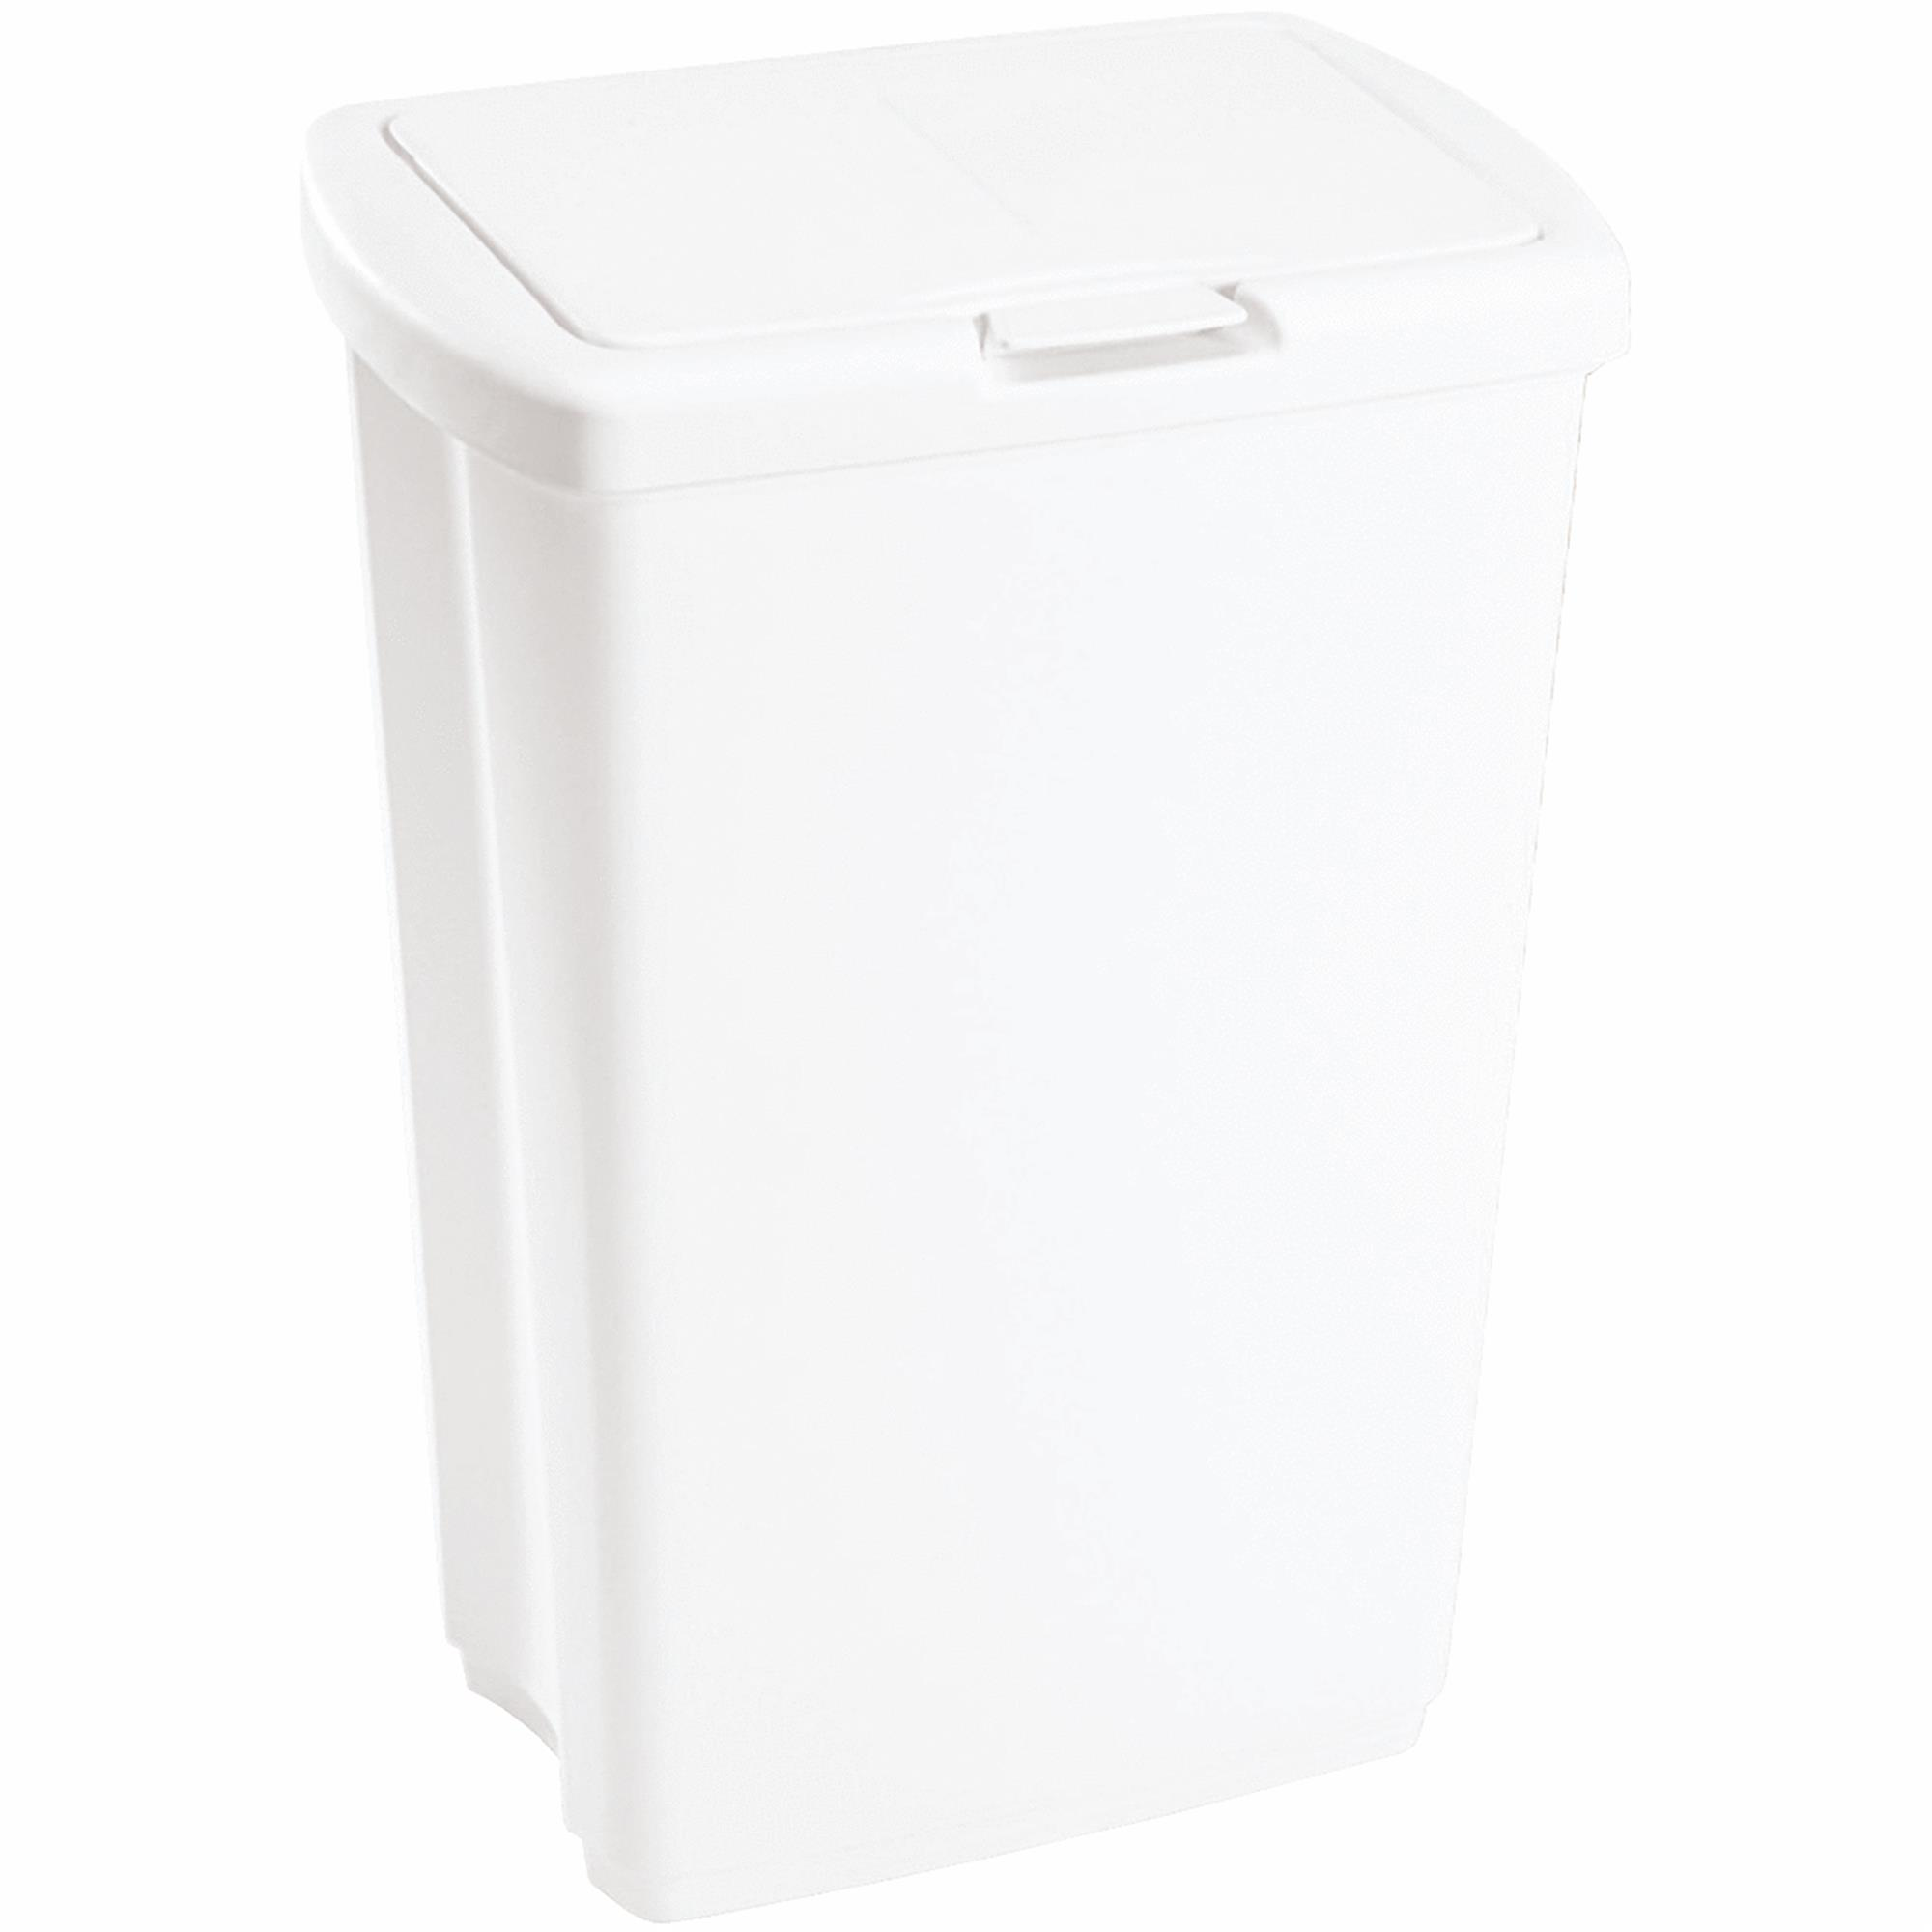 Rubbermaid 13.25-Gallon Spring Top Wastebasket, White by Newell Rubbermaid